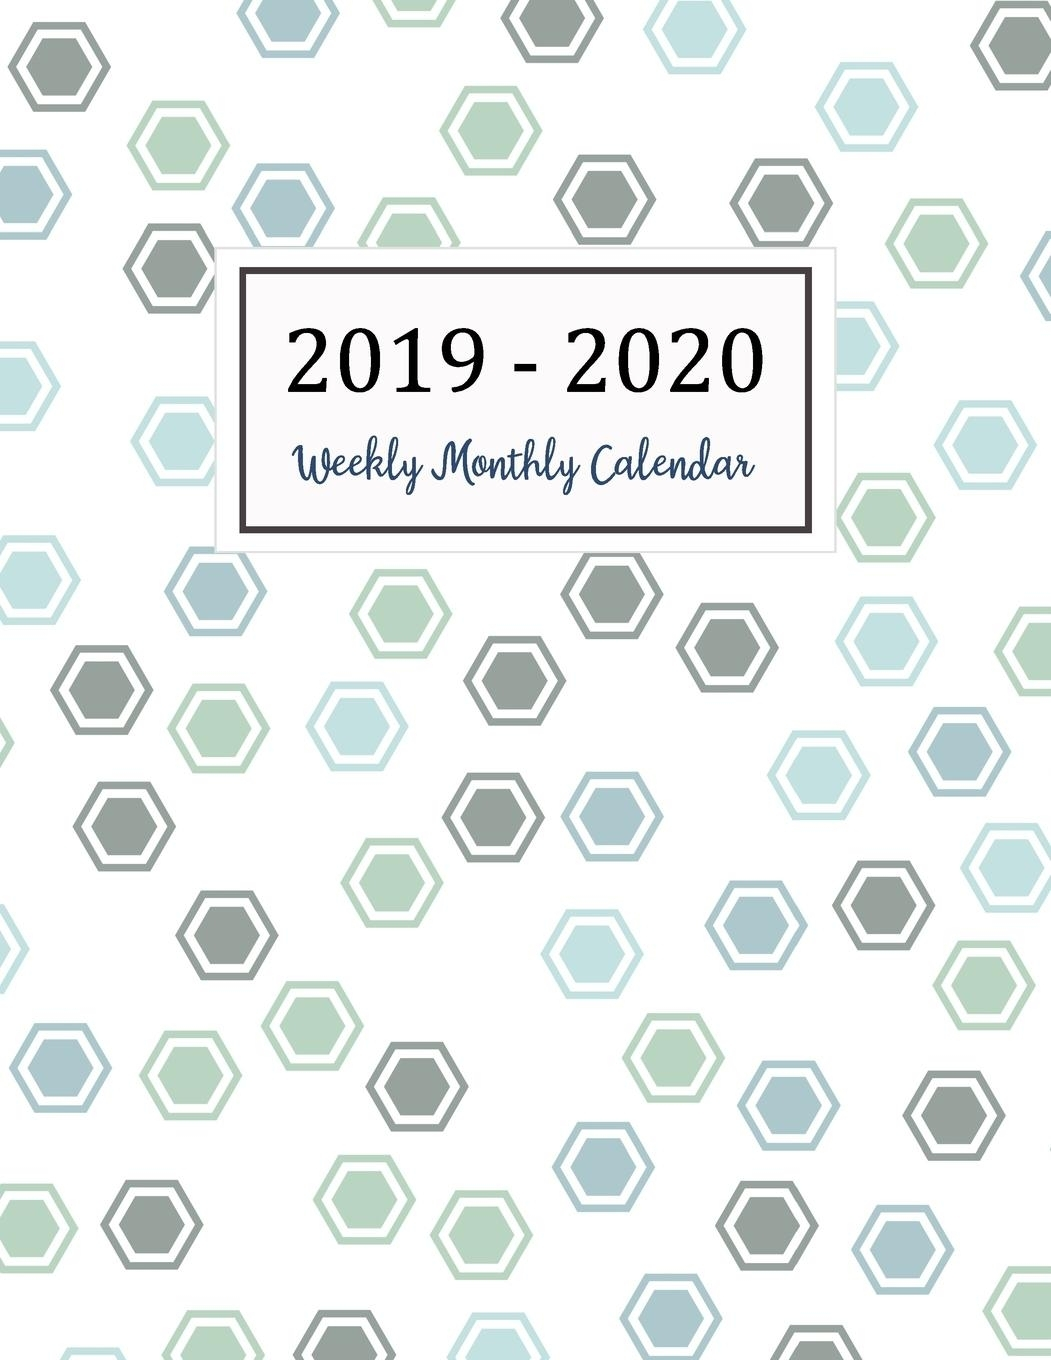 2019-2020 Calendar: Two Years - Daily Weekly Monthly Calendar Planner 24  Months January 2019 To December 2020 - Walmart